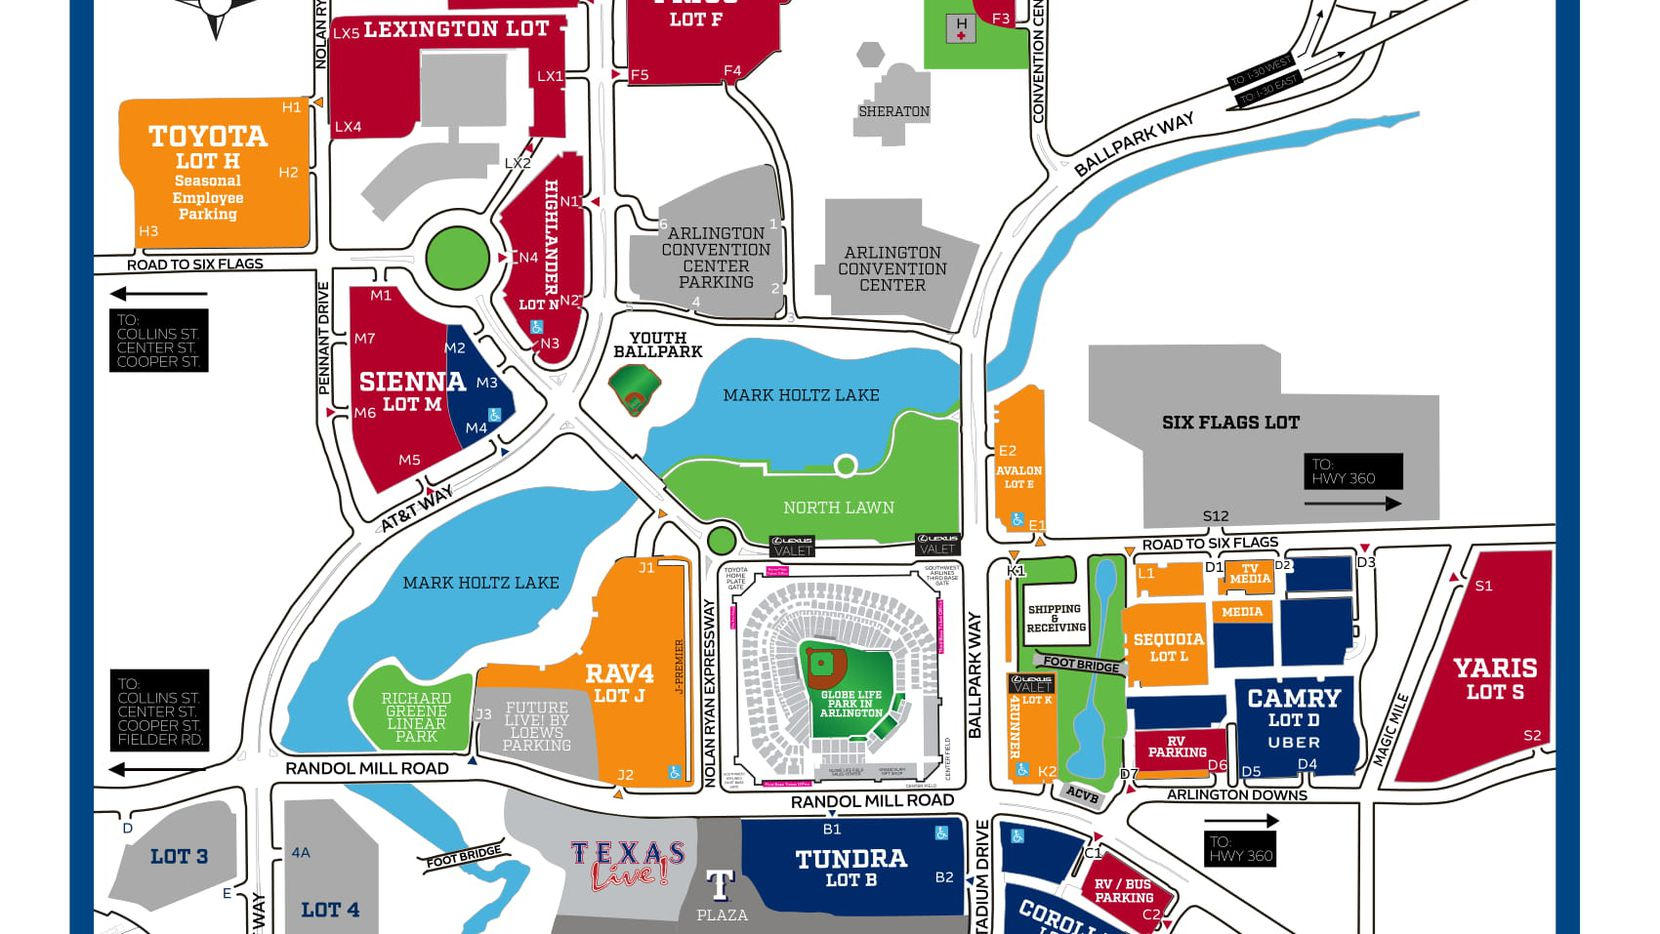 What Rangers Fans Need To Know About Parking At Globe Life Park